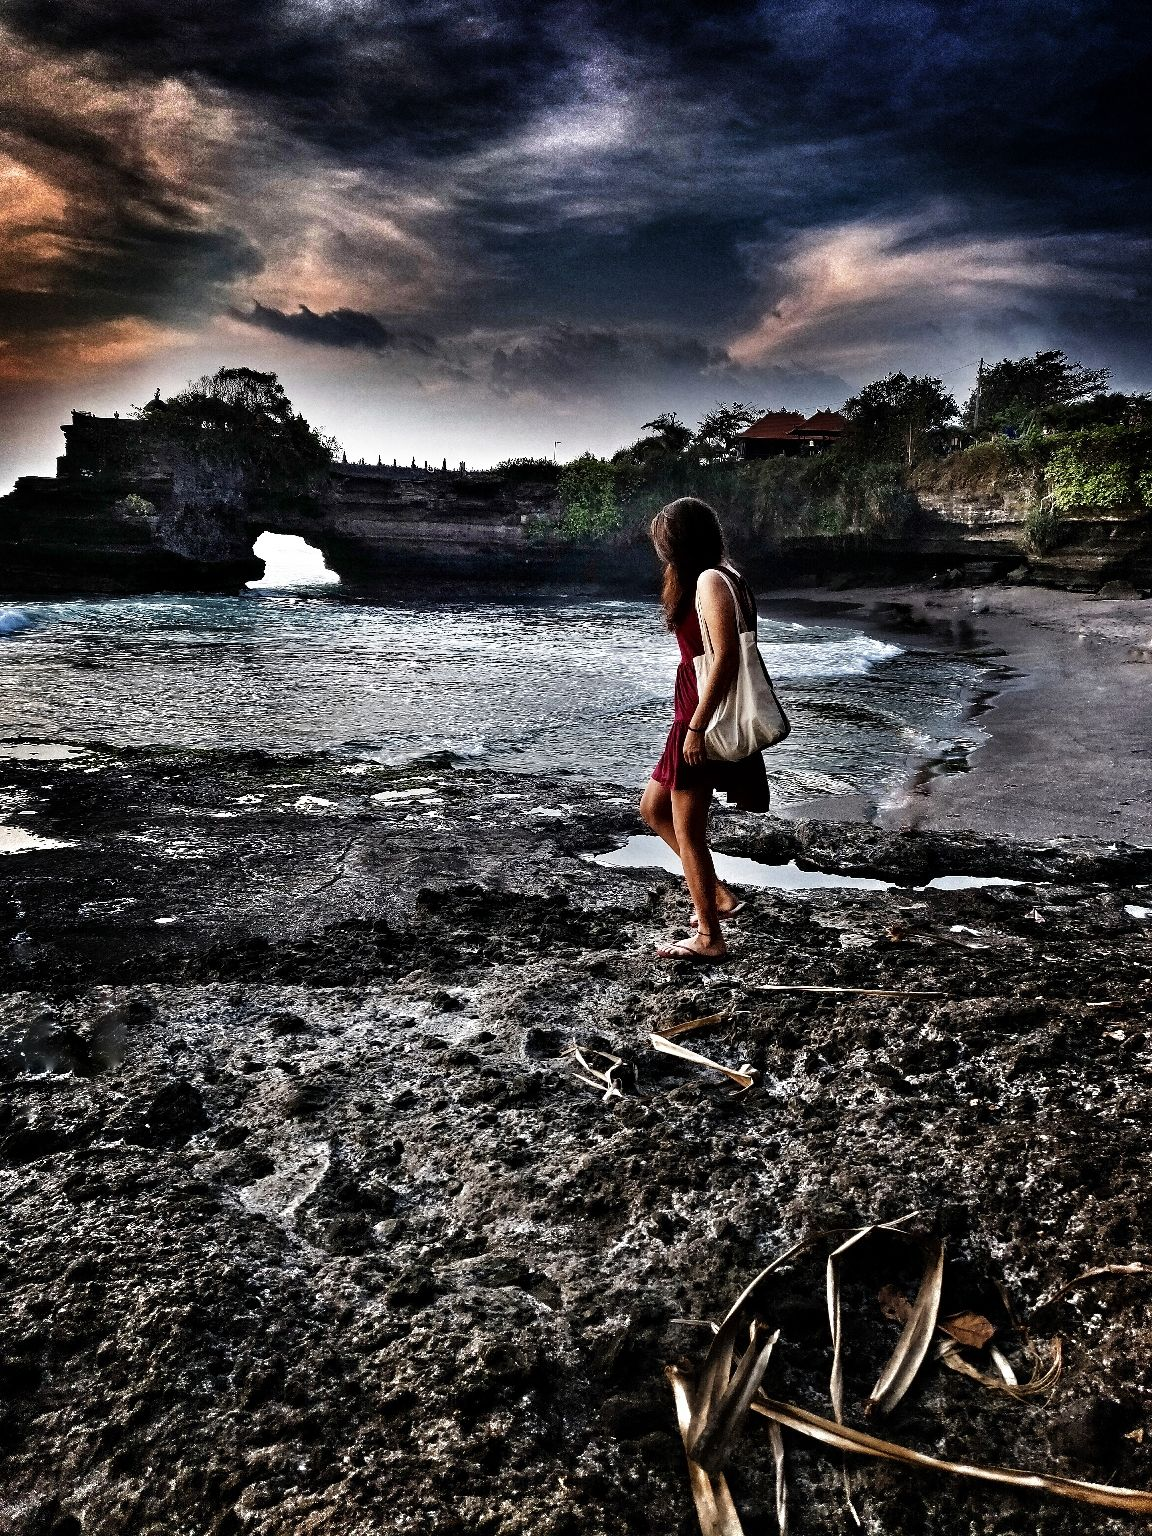 Photo of Tanah Lot Temple By Nikhar Loonker